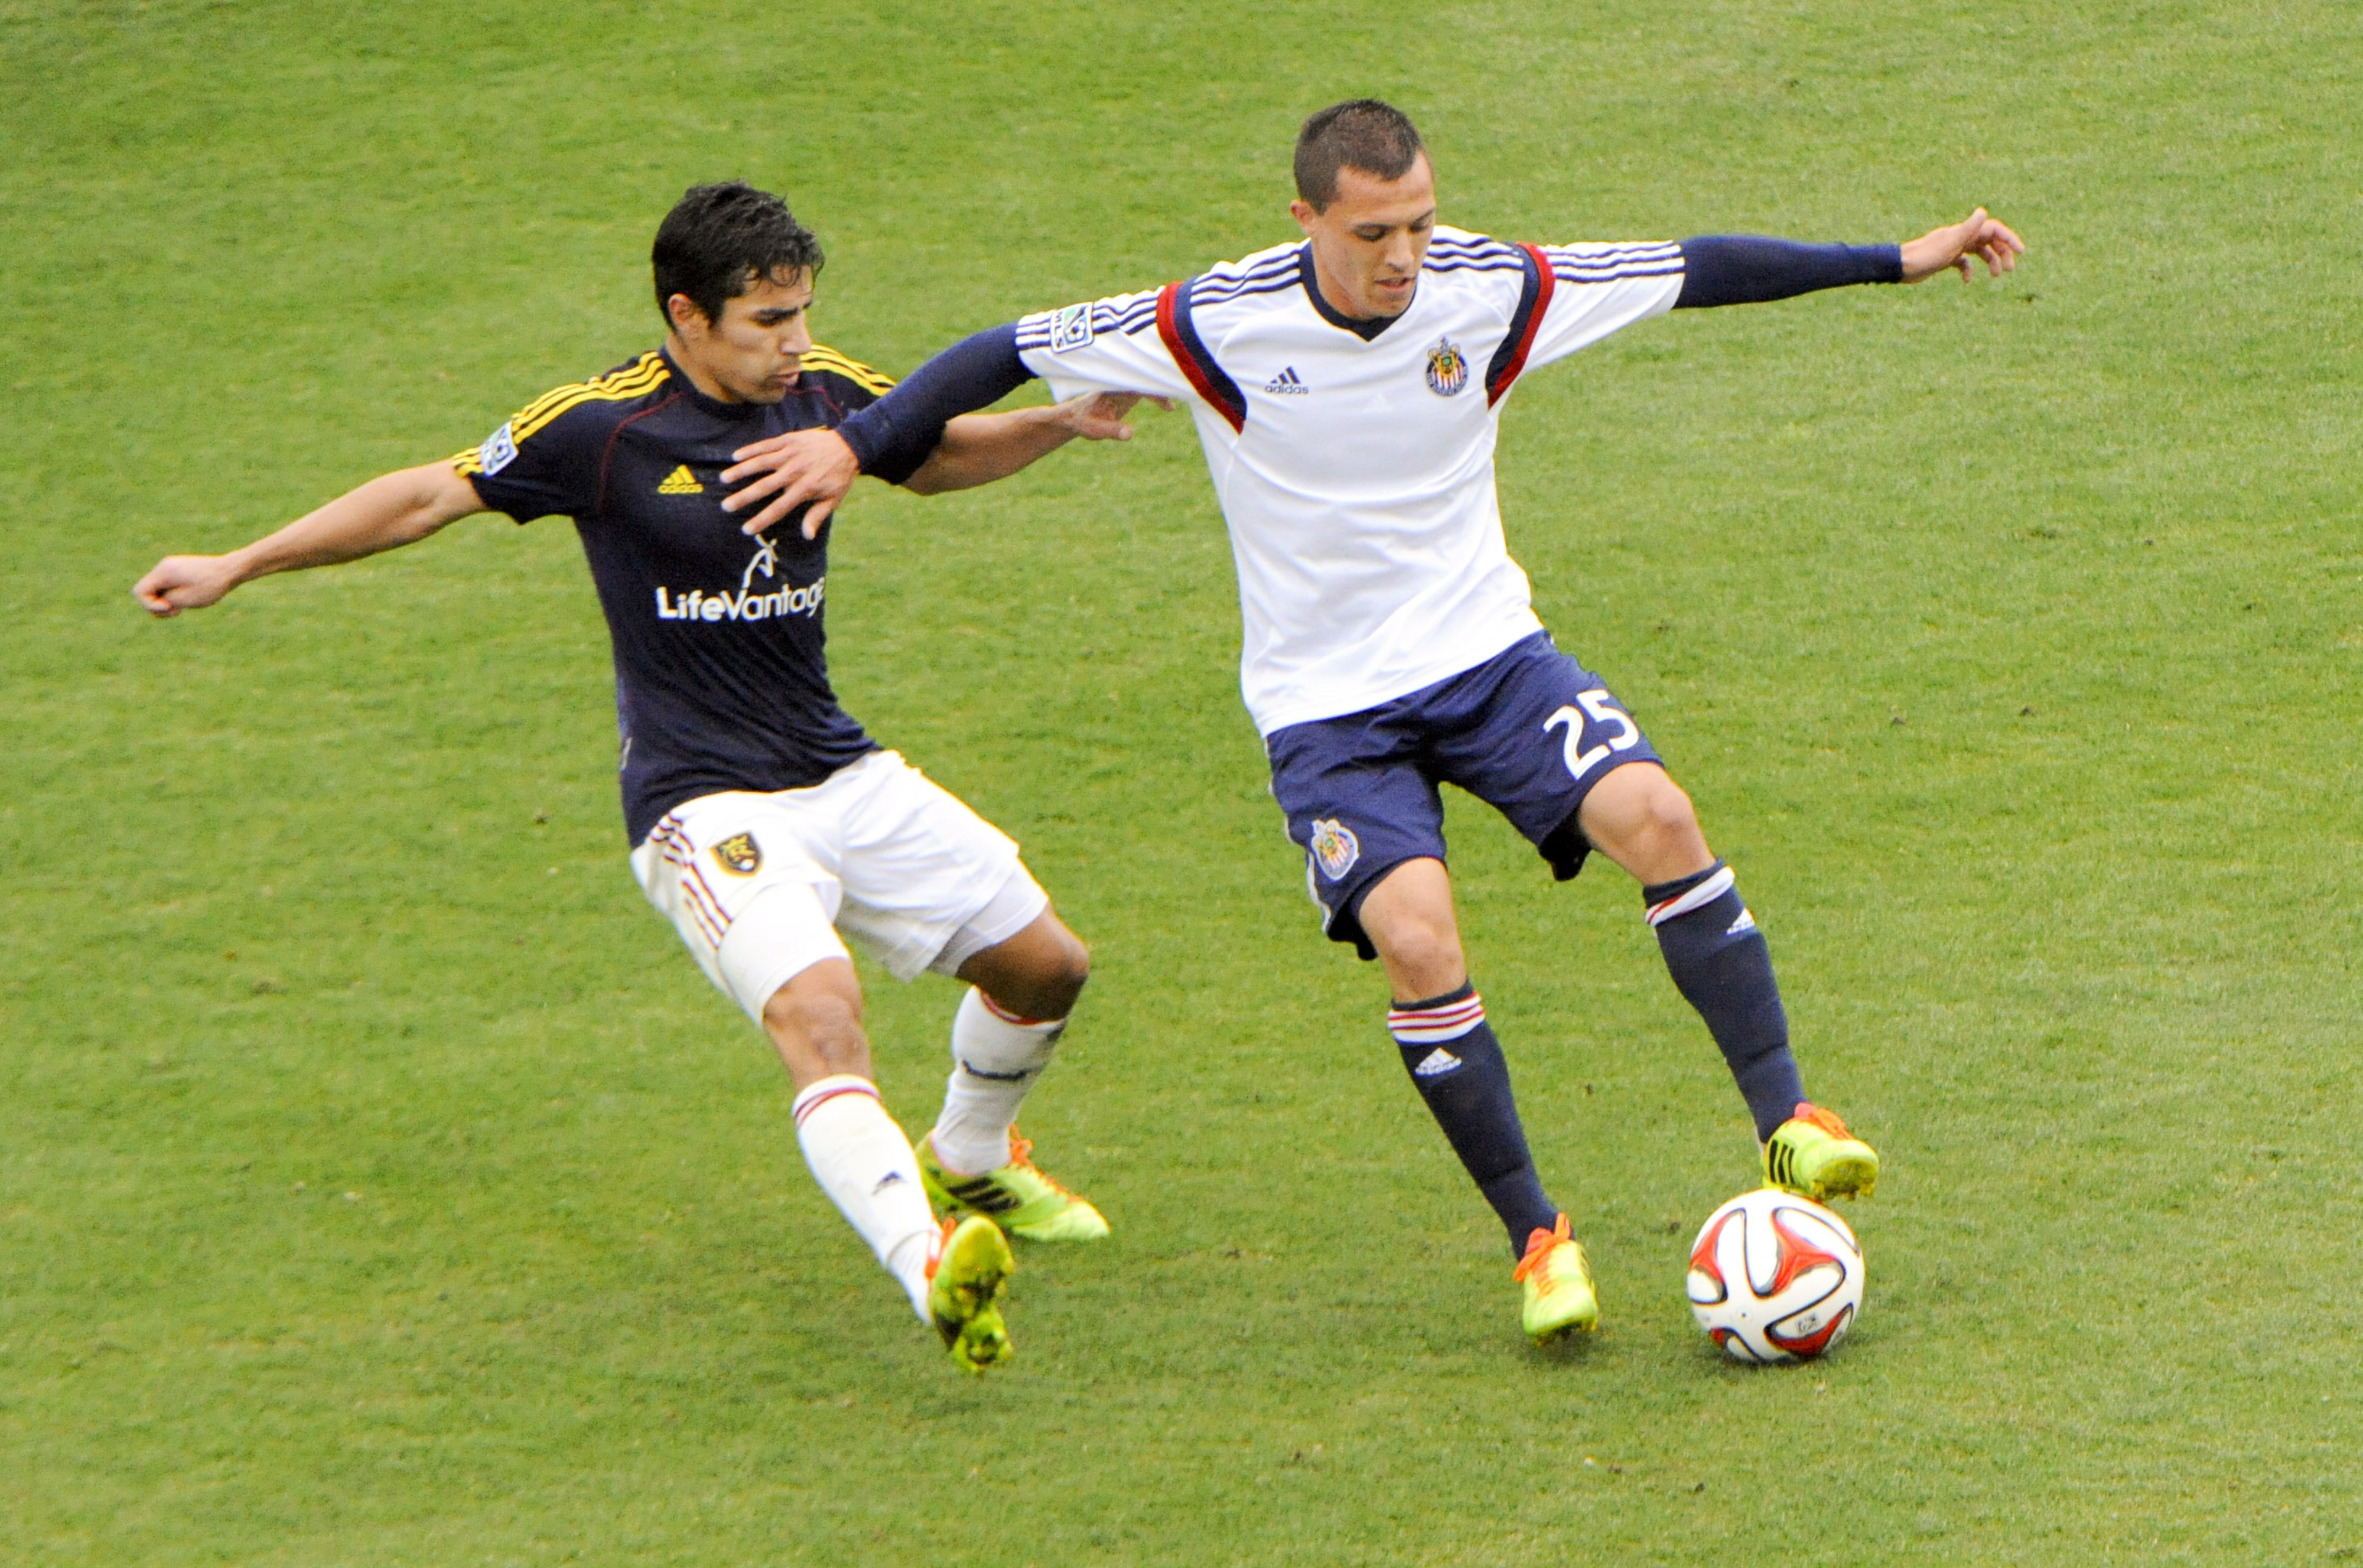 Current Goat Donny Toia spent 2013 with Phoenix FC Wolves